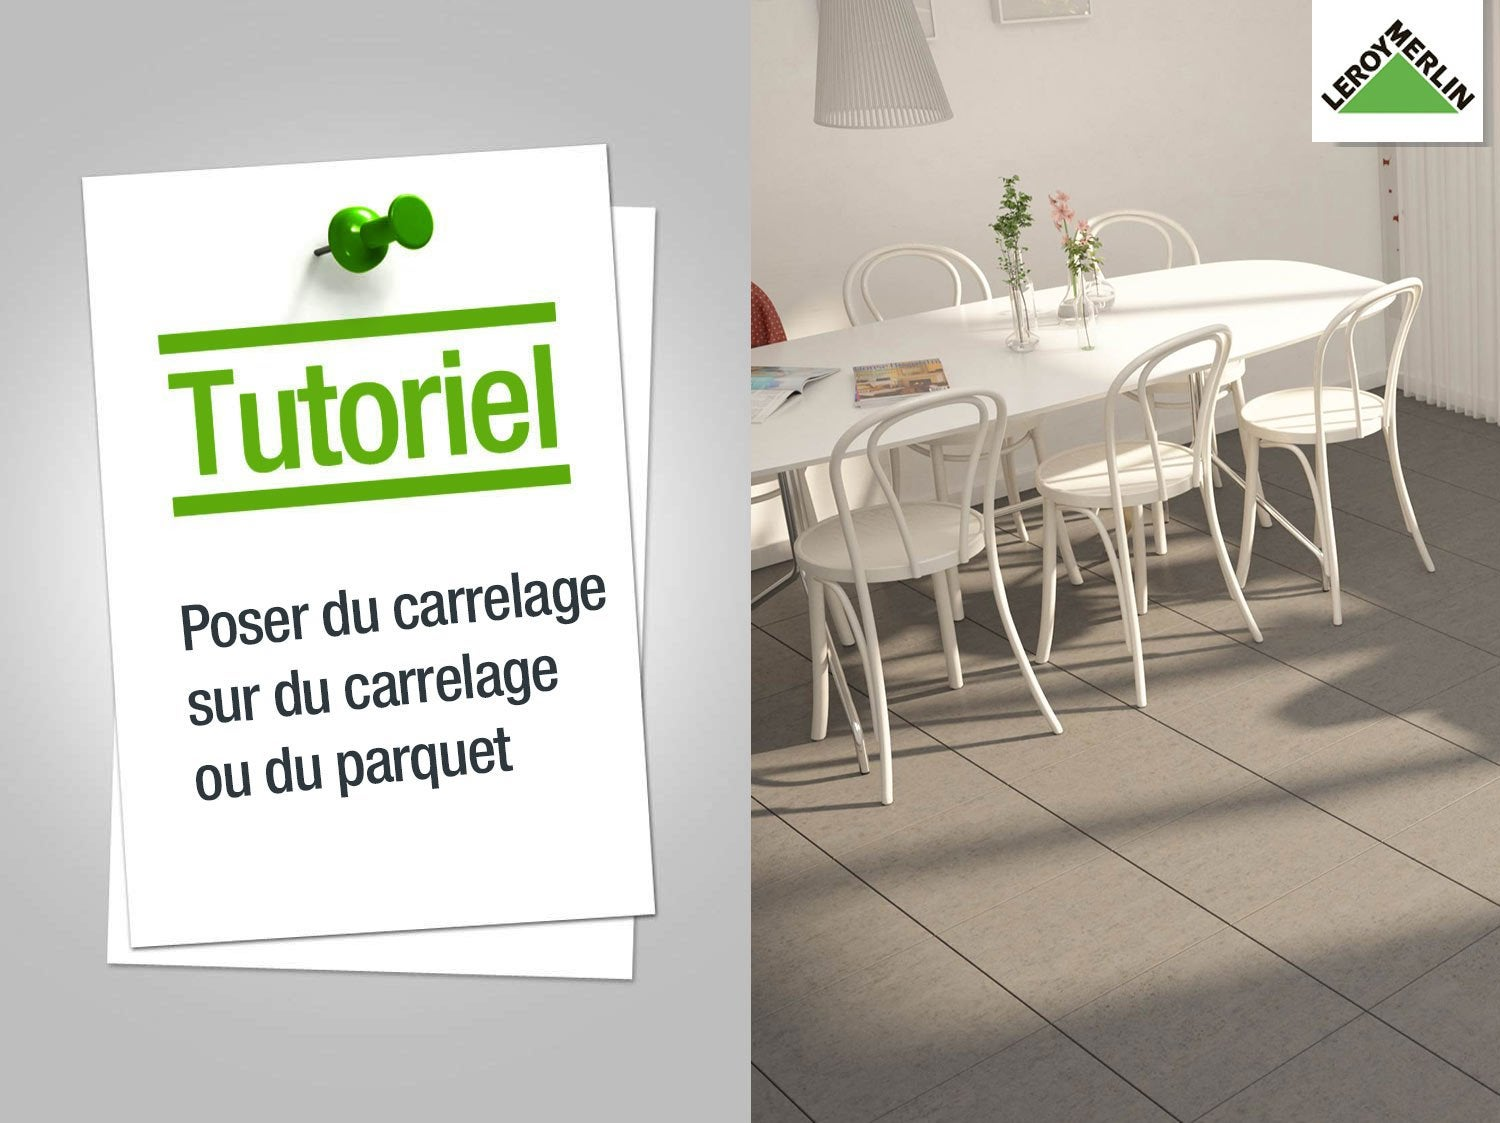 Comment poser du carrelage for Poser du carrelage sur carrelage